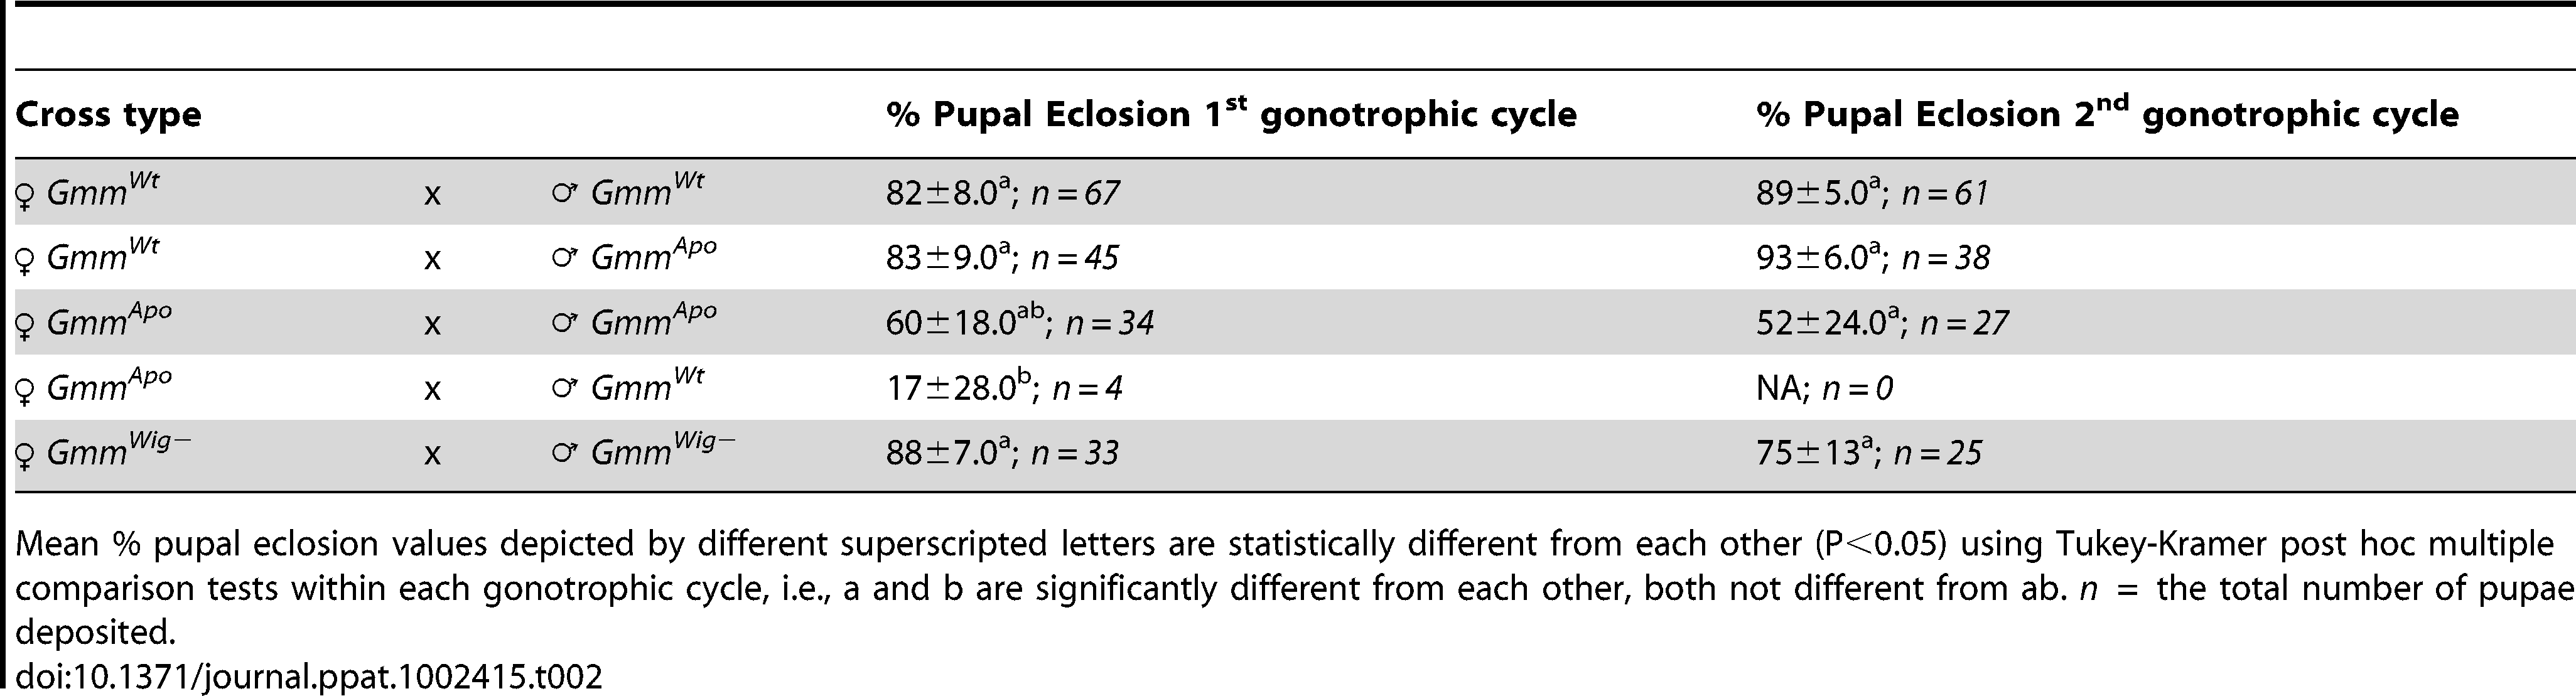 Eclosion rates (%) of deposited pupae.